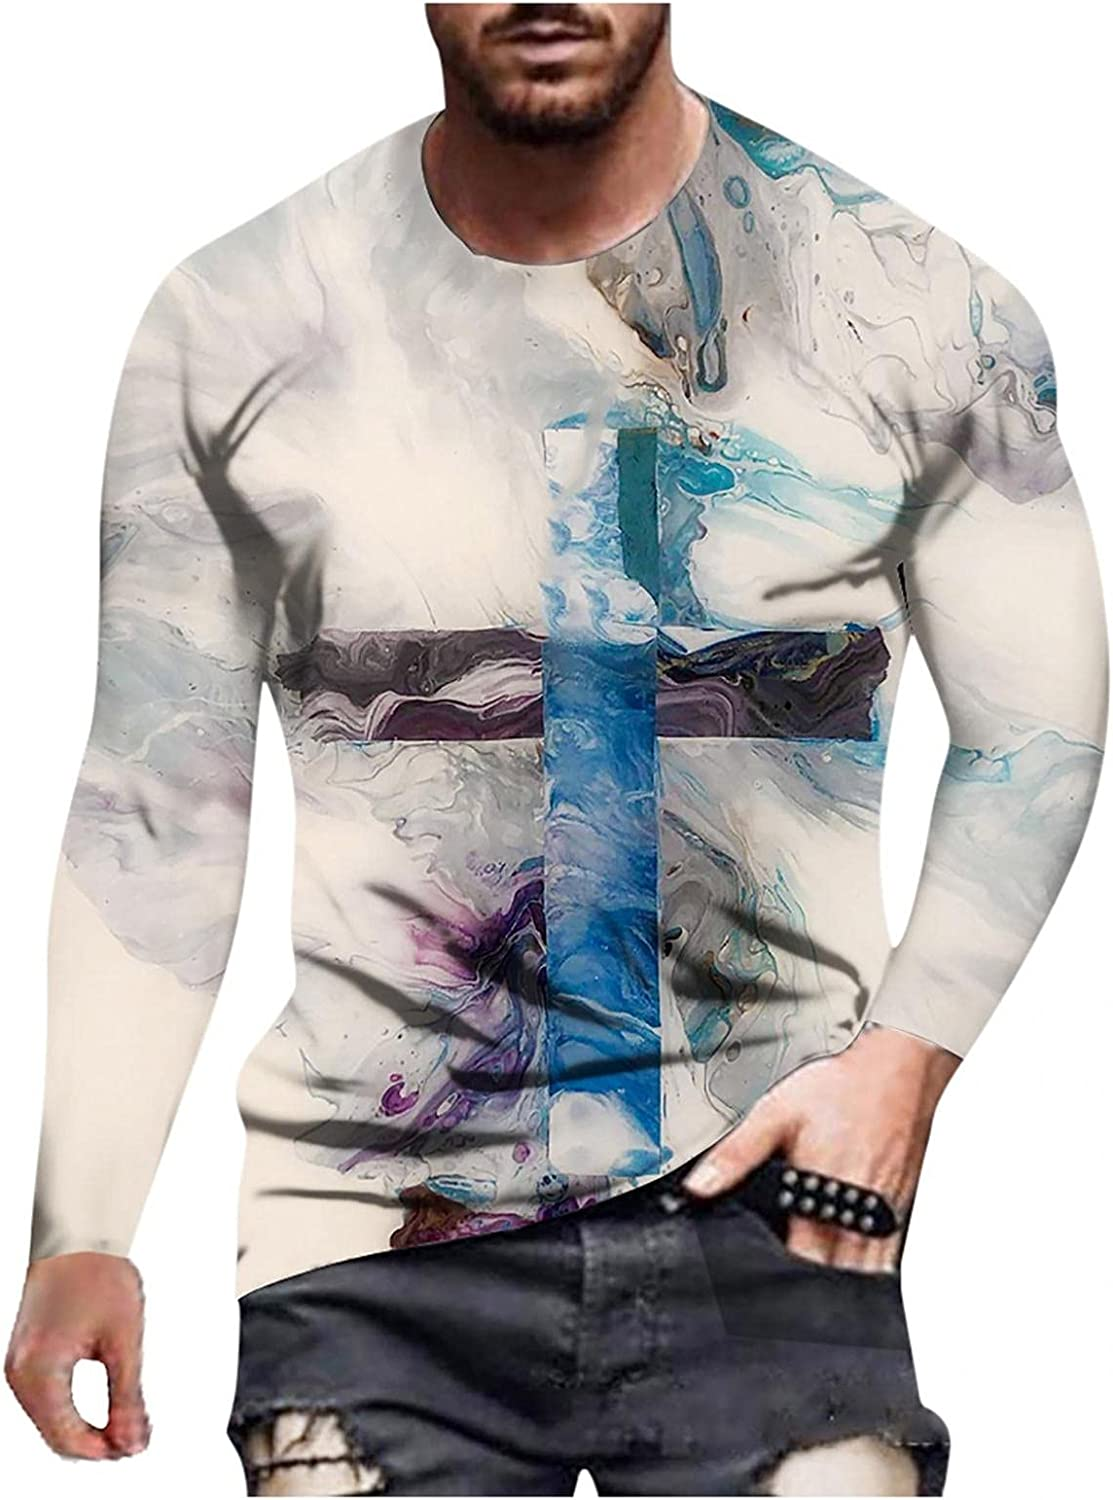 WUAI-Men Long Sleeve Workout T-Shirts Fashion Cross Printed Graphic Tee Slim Fit Christian Athletic Muscle Faith Tops